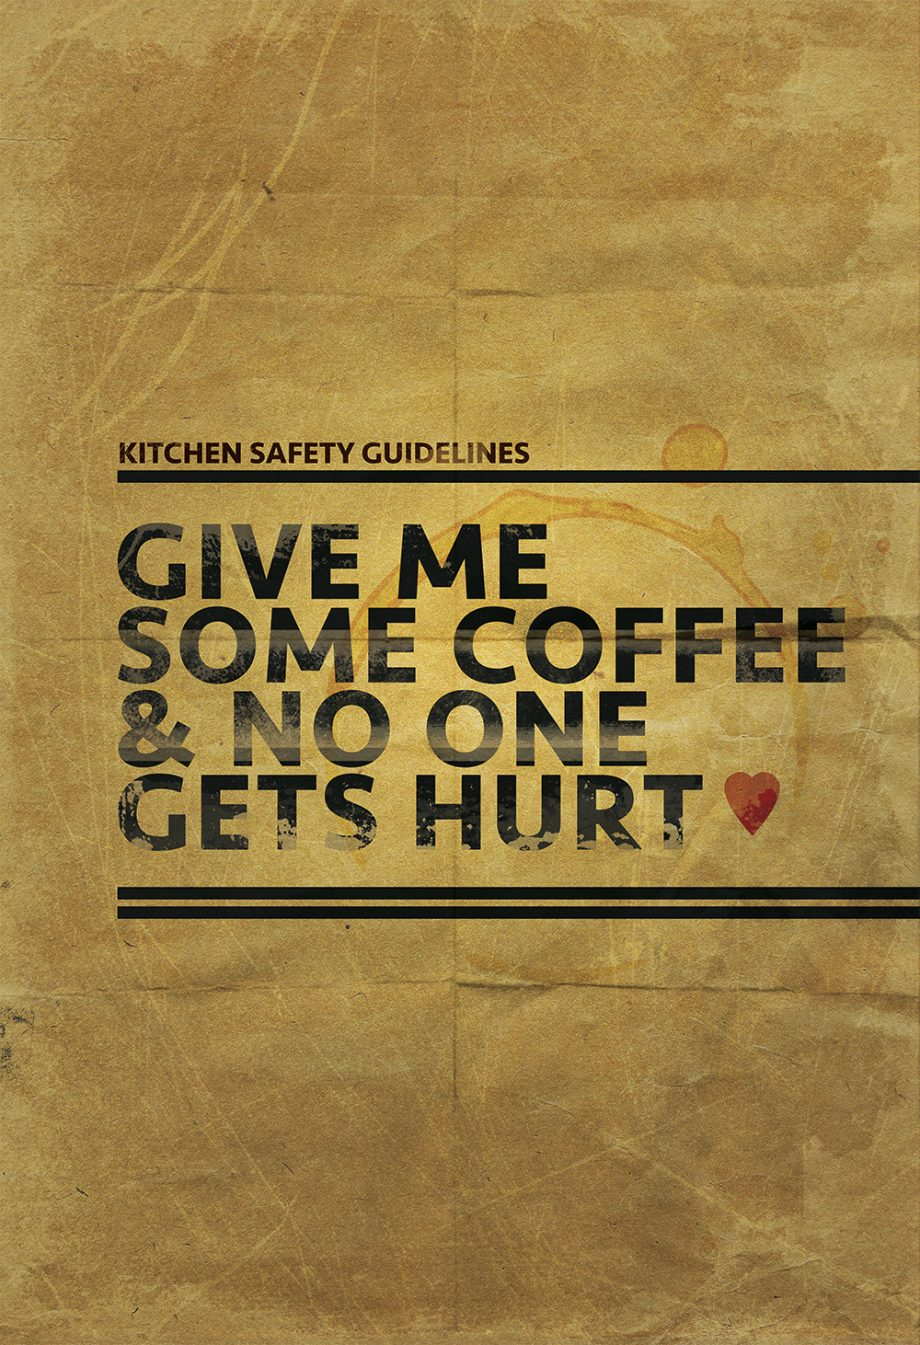 coffee-poster-kitchen-print-original-giclee-large-poster-print-on-satin-or-cotton-canvas-funny-home-kitchen-decor-5817aa3e4.jpg